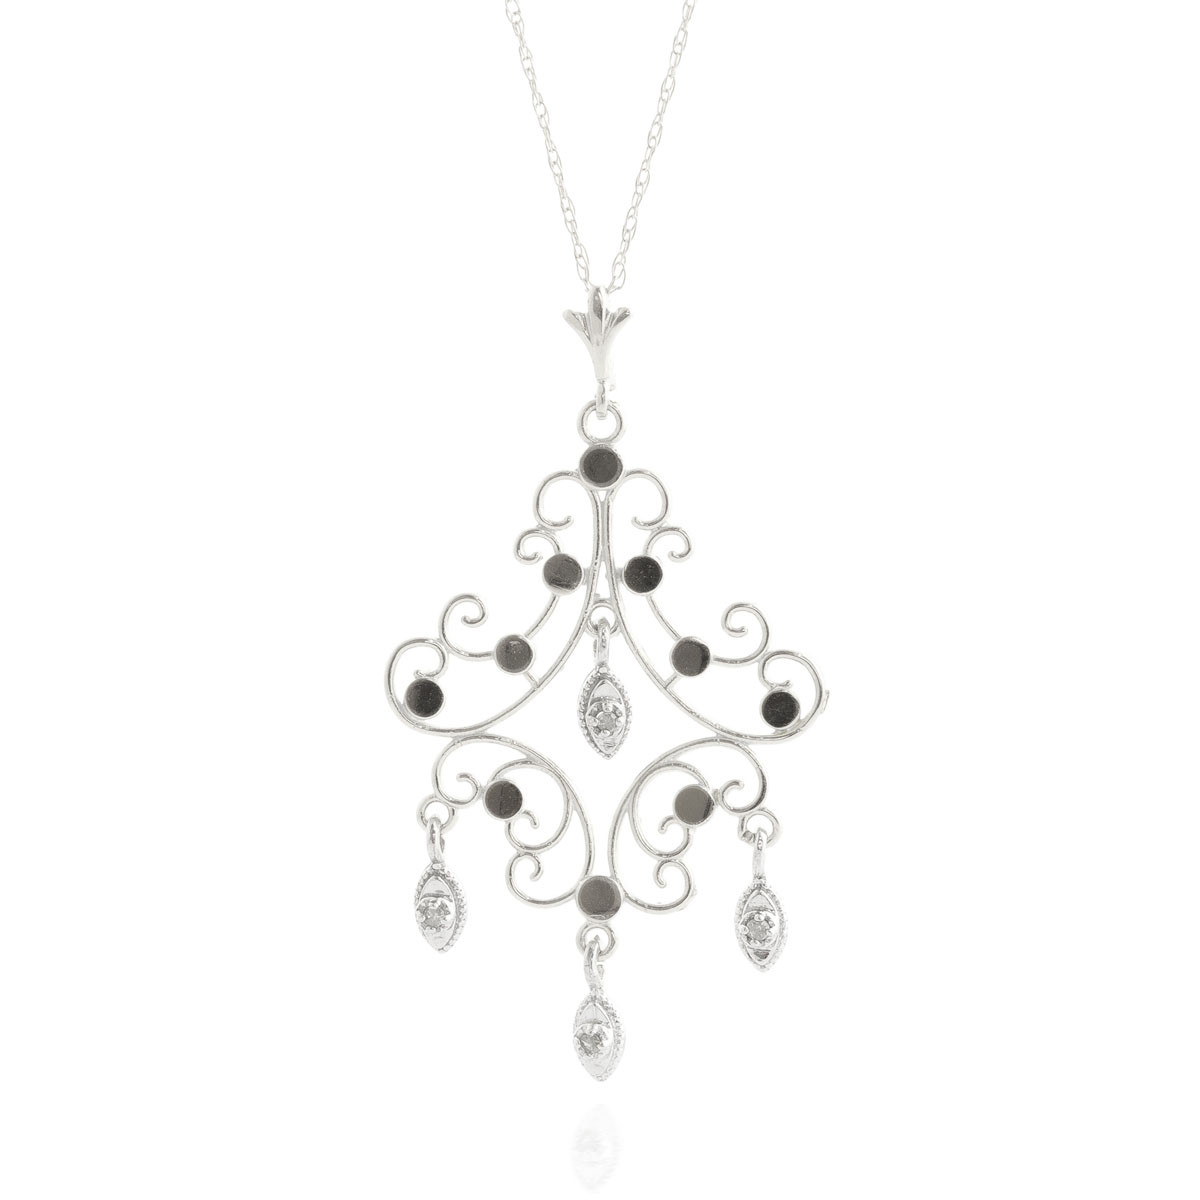 Round Cut Diamond Pendant Necklace 0.02 ctw in 9ct White Gold